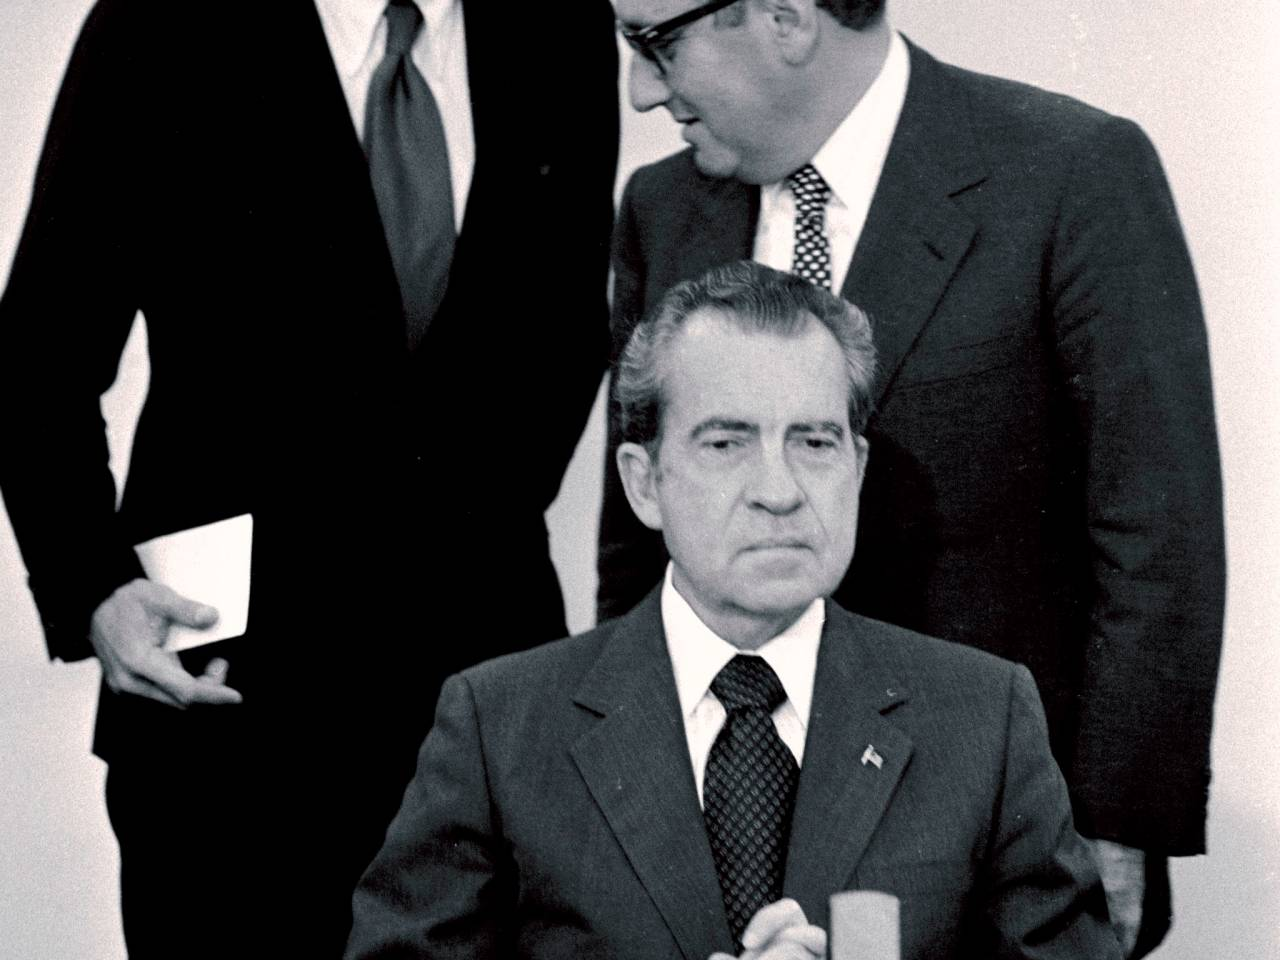 Nixon Administration Cabinet Rummyleaks The President Then Said Richard Nixon Doesnt Shoot